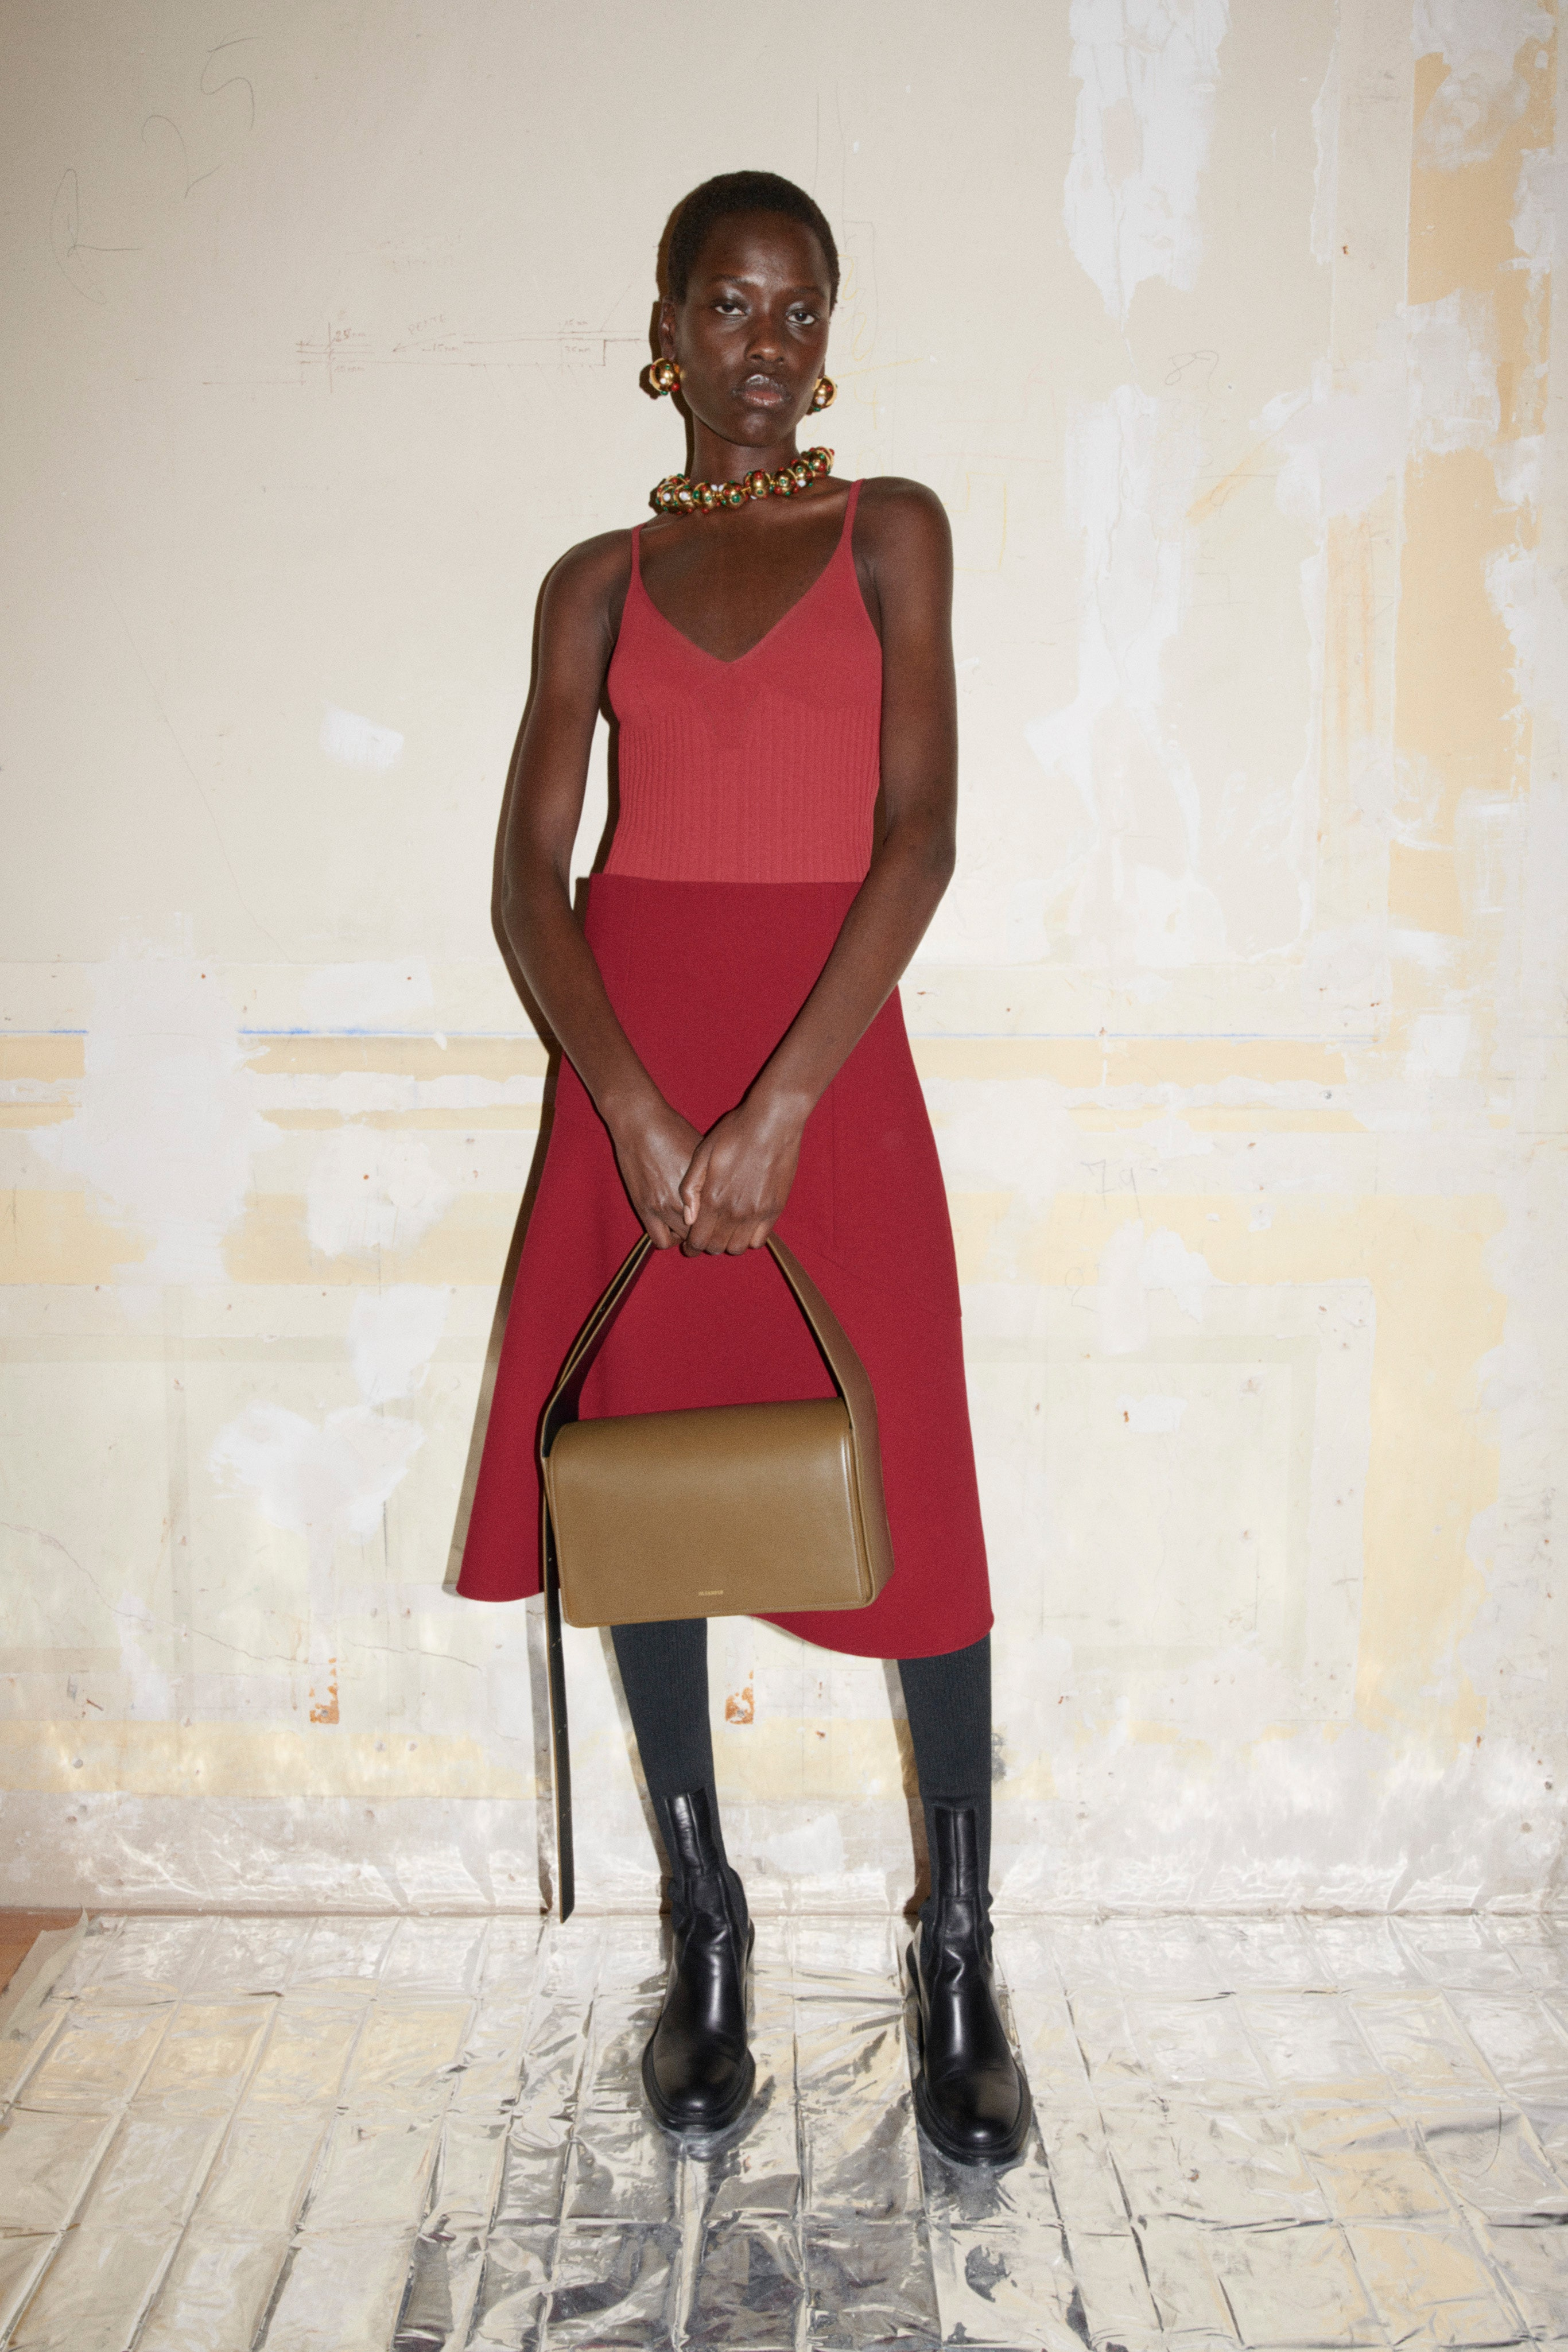 For walks in the fresh air: A seasonal collection of Jil Sander arrived at Asthik (photo 9)